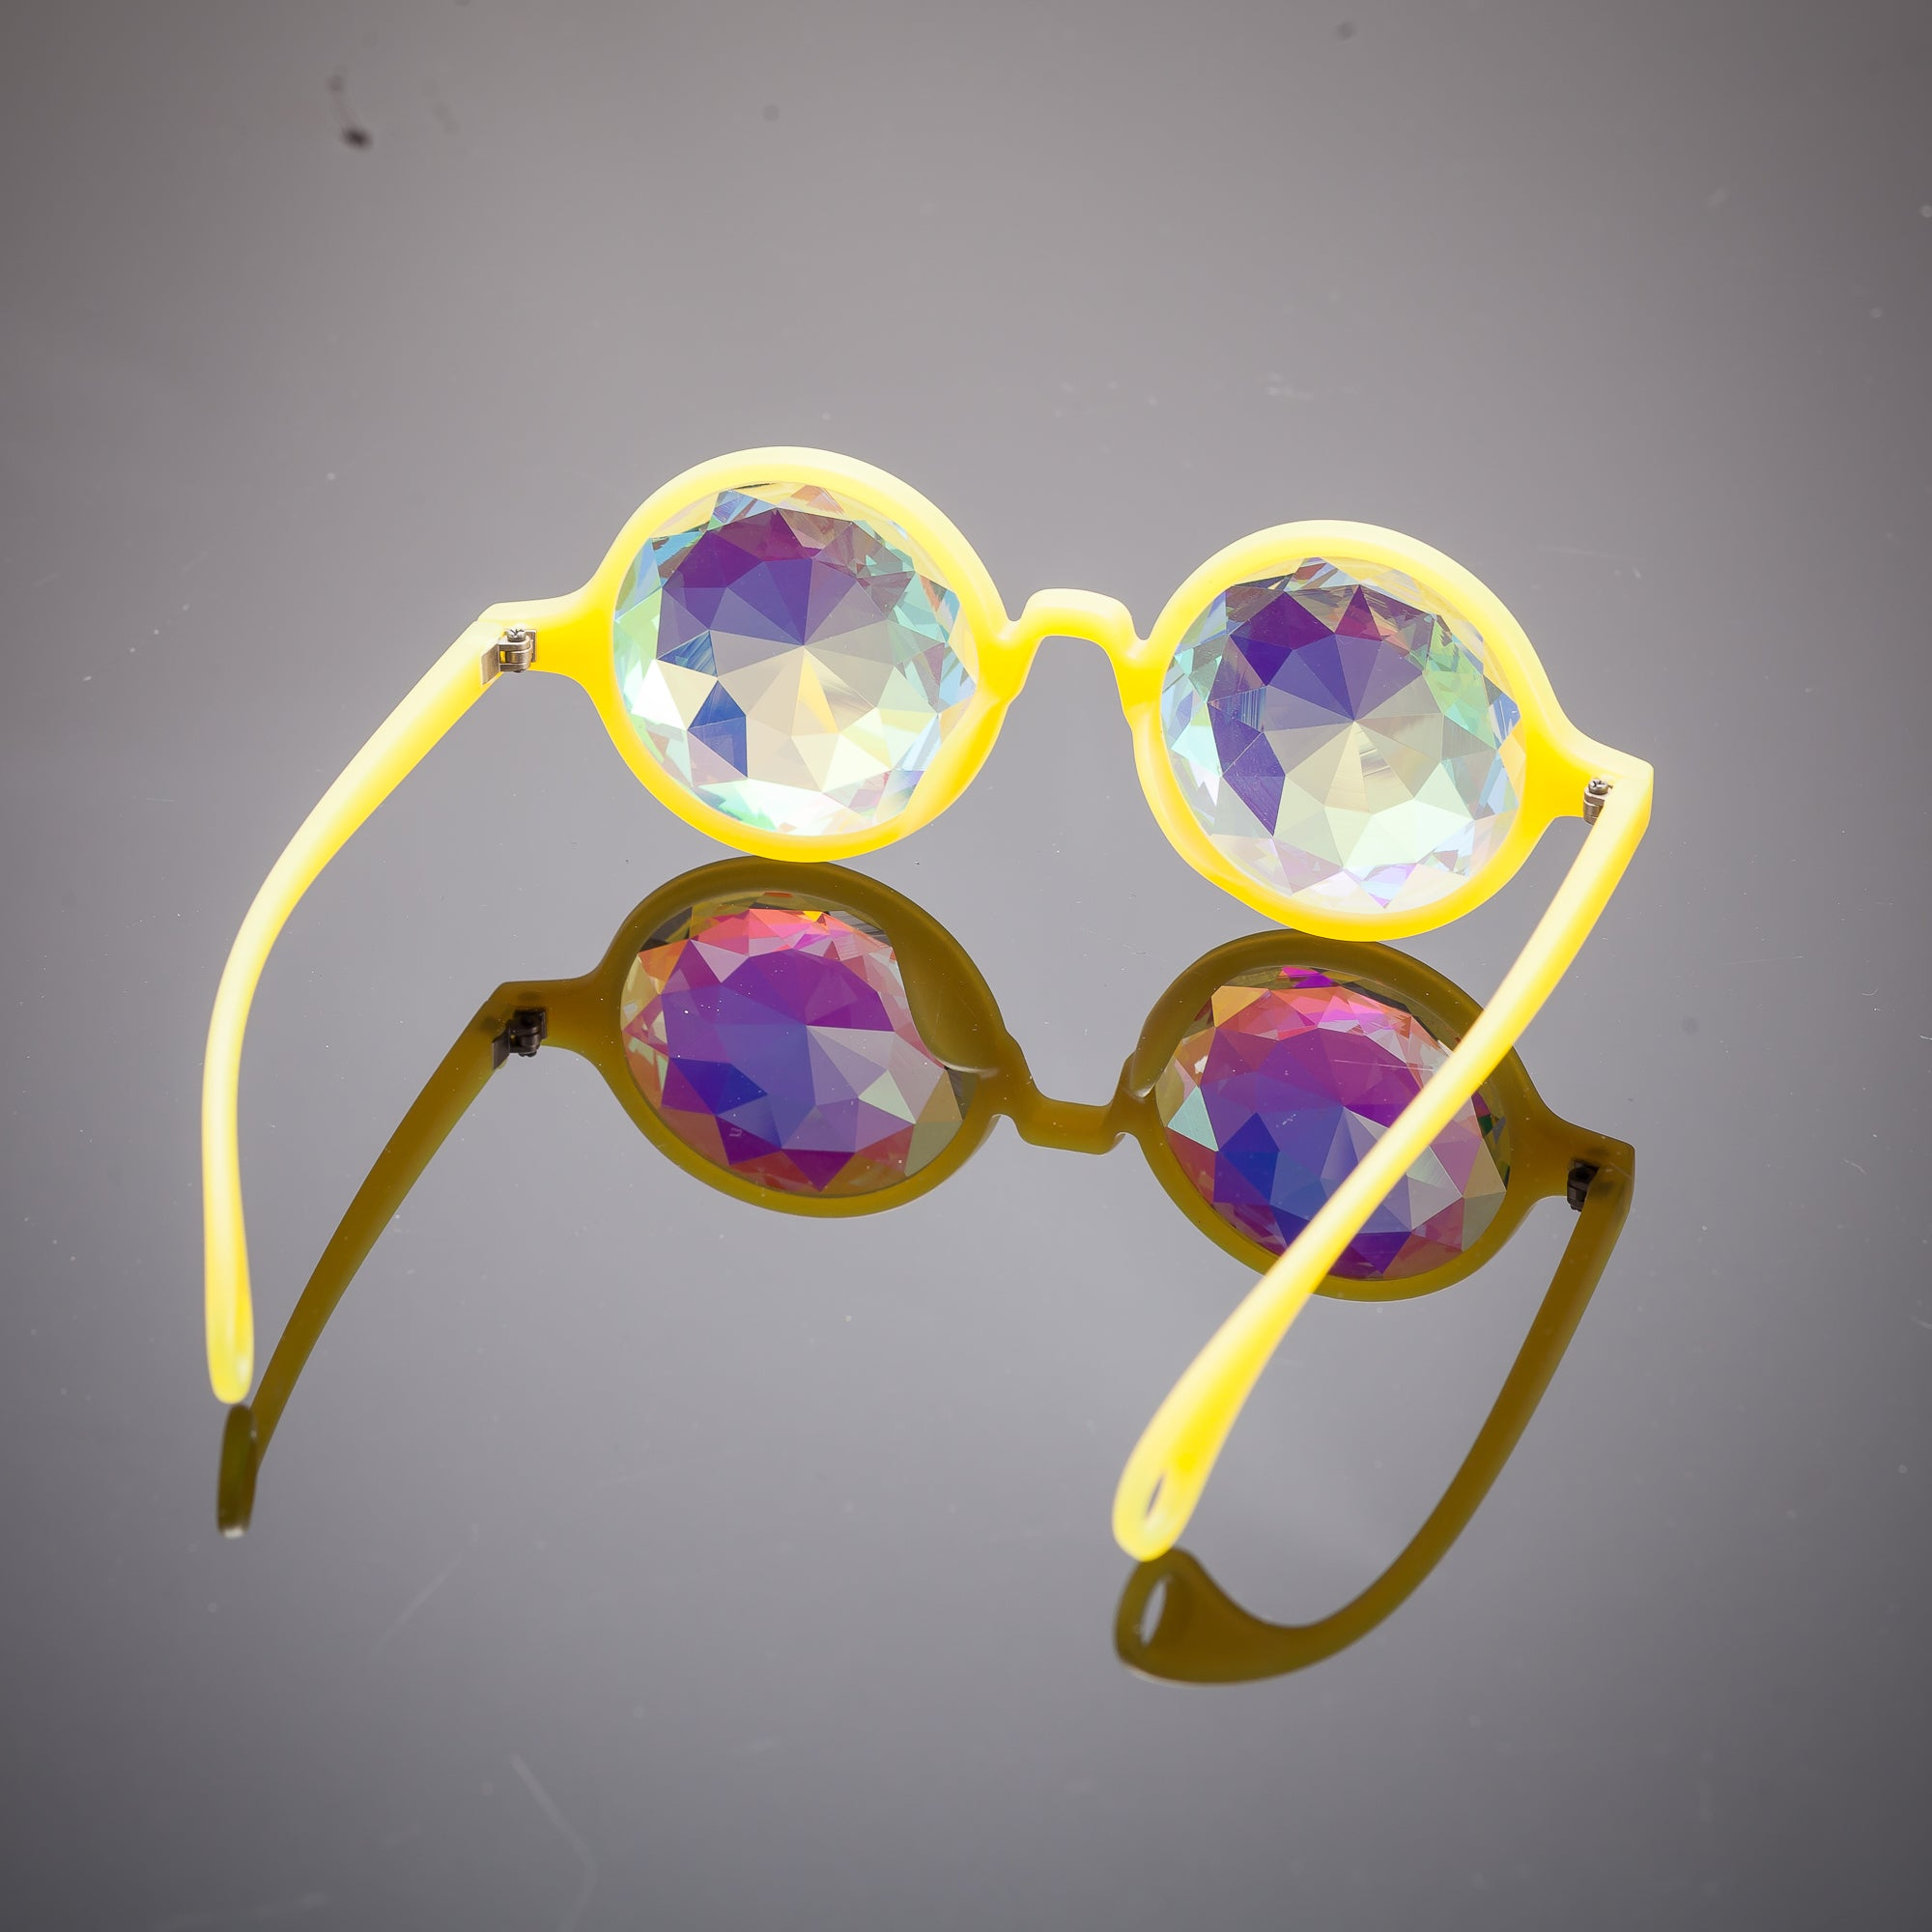 Glow Yellow Diamond Kaleidoscope Glasses - SuperFried